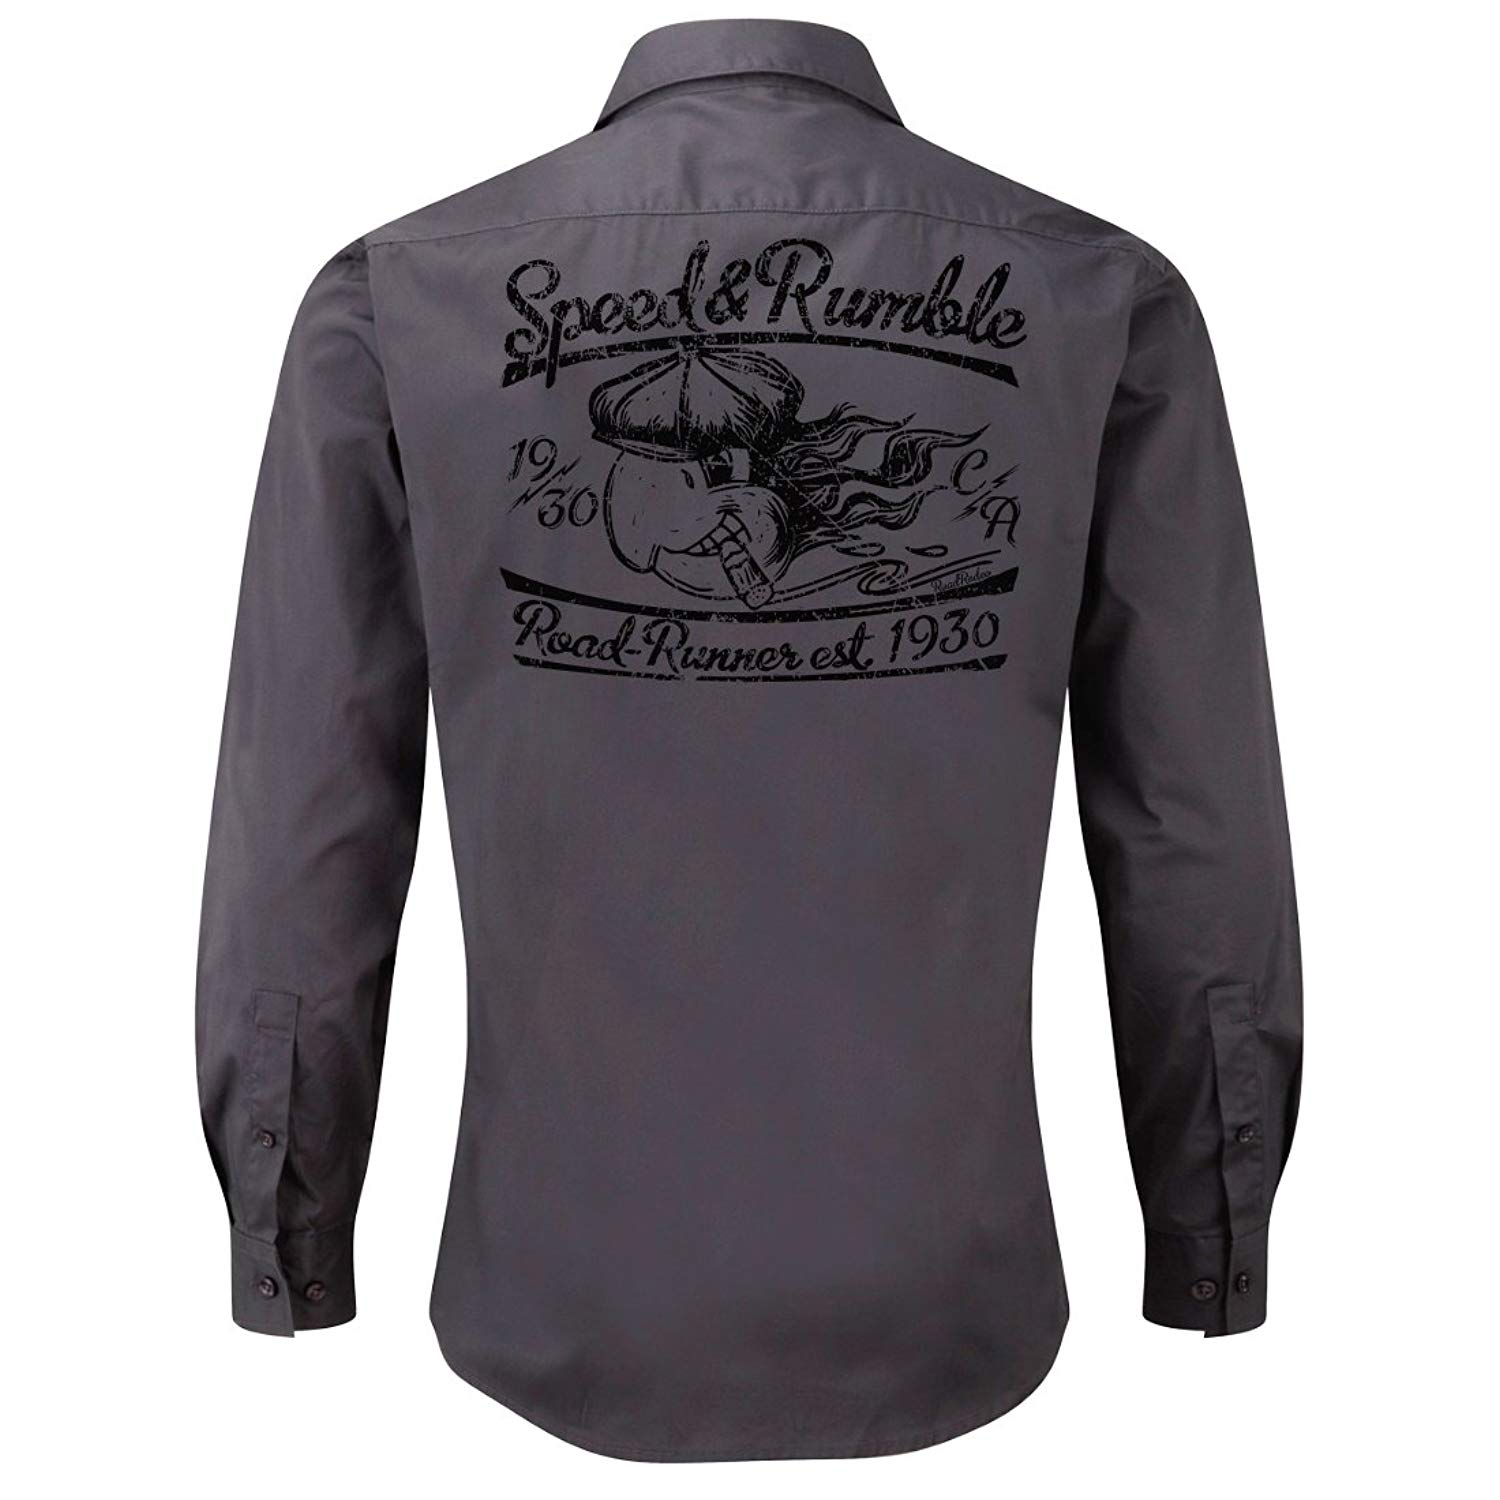 Rockabilly,Mechanic Work Shirt, Longsleeve, Rock'n'Roll, Parrot, V8, US Car, Speed and Rumble (Grey)